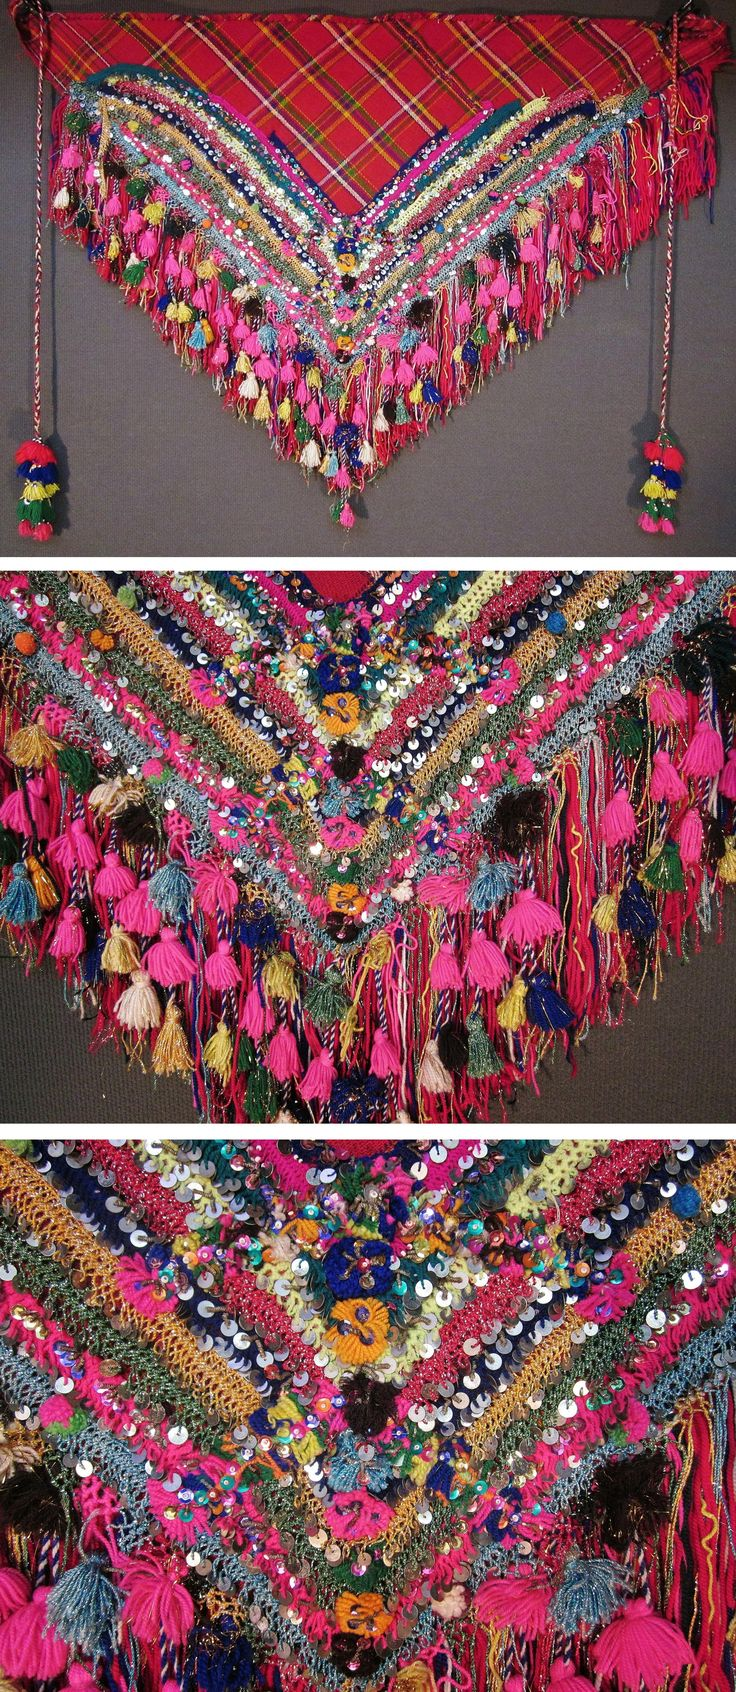 An 'arkalık kuşak' (waist cloth)  from the Pomak villages near Biga (Çanakkale prov.).  Part of the traditional festive costume for women.  1950-1975.  Adorned with cotton crochet lace, small metallic spirals, (cotton or orlon) pom-poms & tassels, and lots of sequins (both metal and mica).  (Inv.nr. ark027 - Kavak Costume Collection - Antwerpen/Belgium).